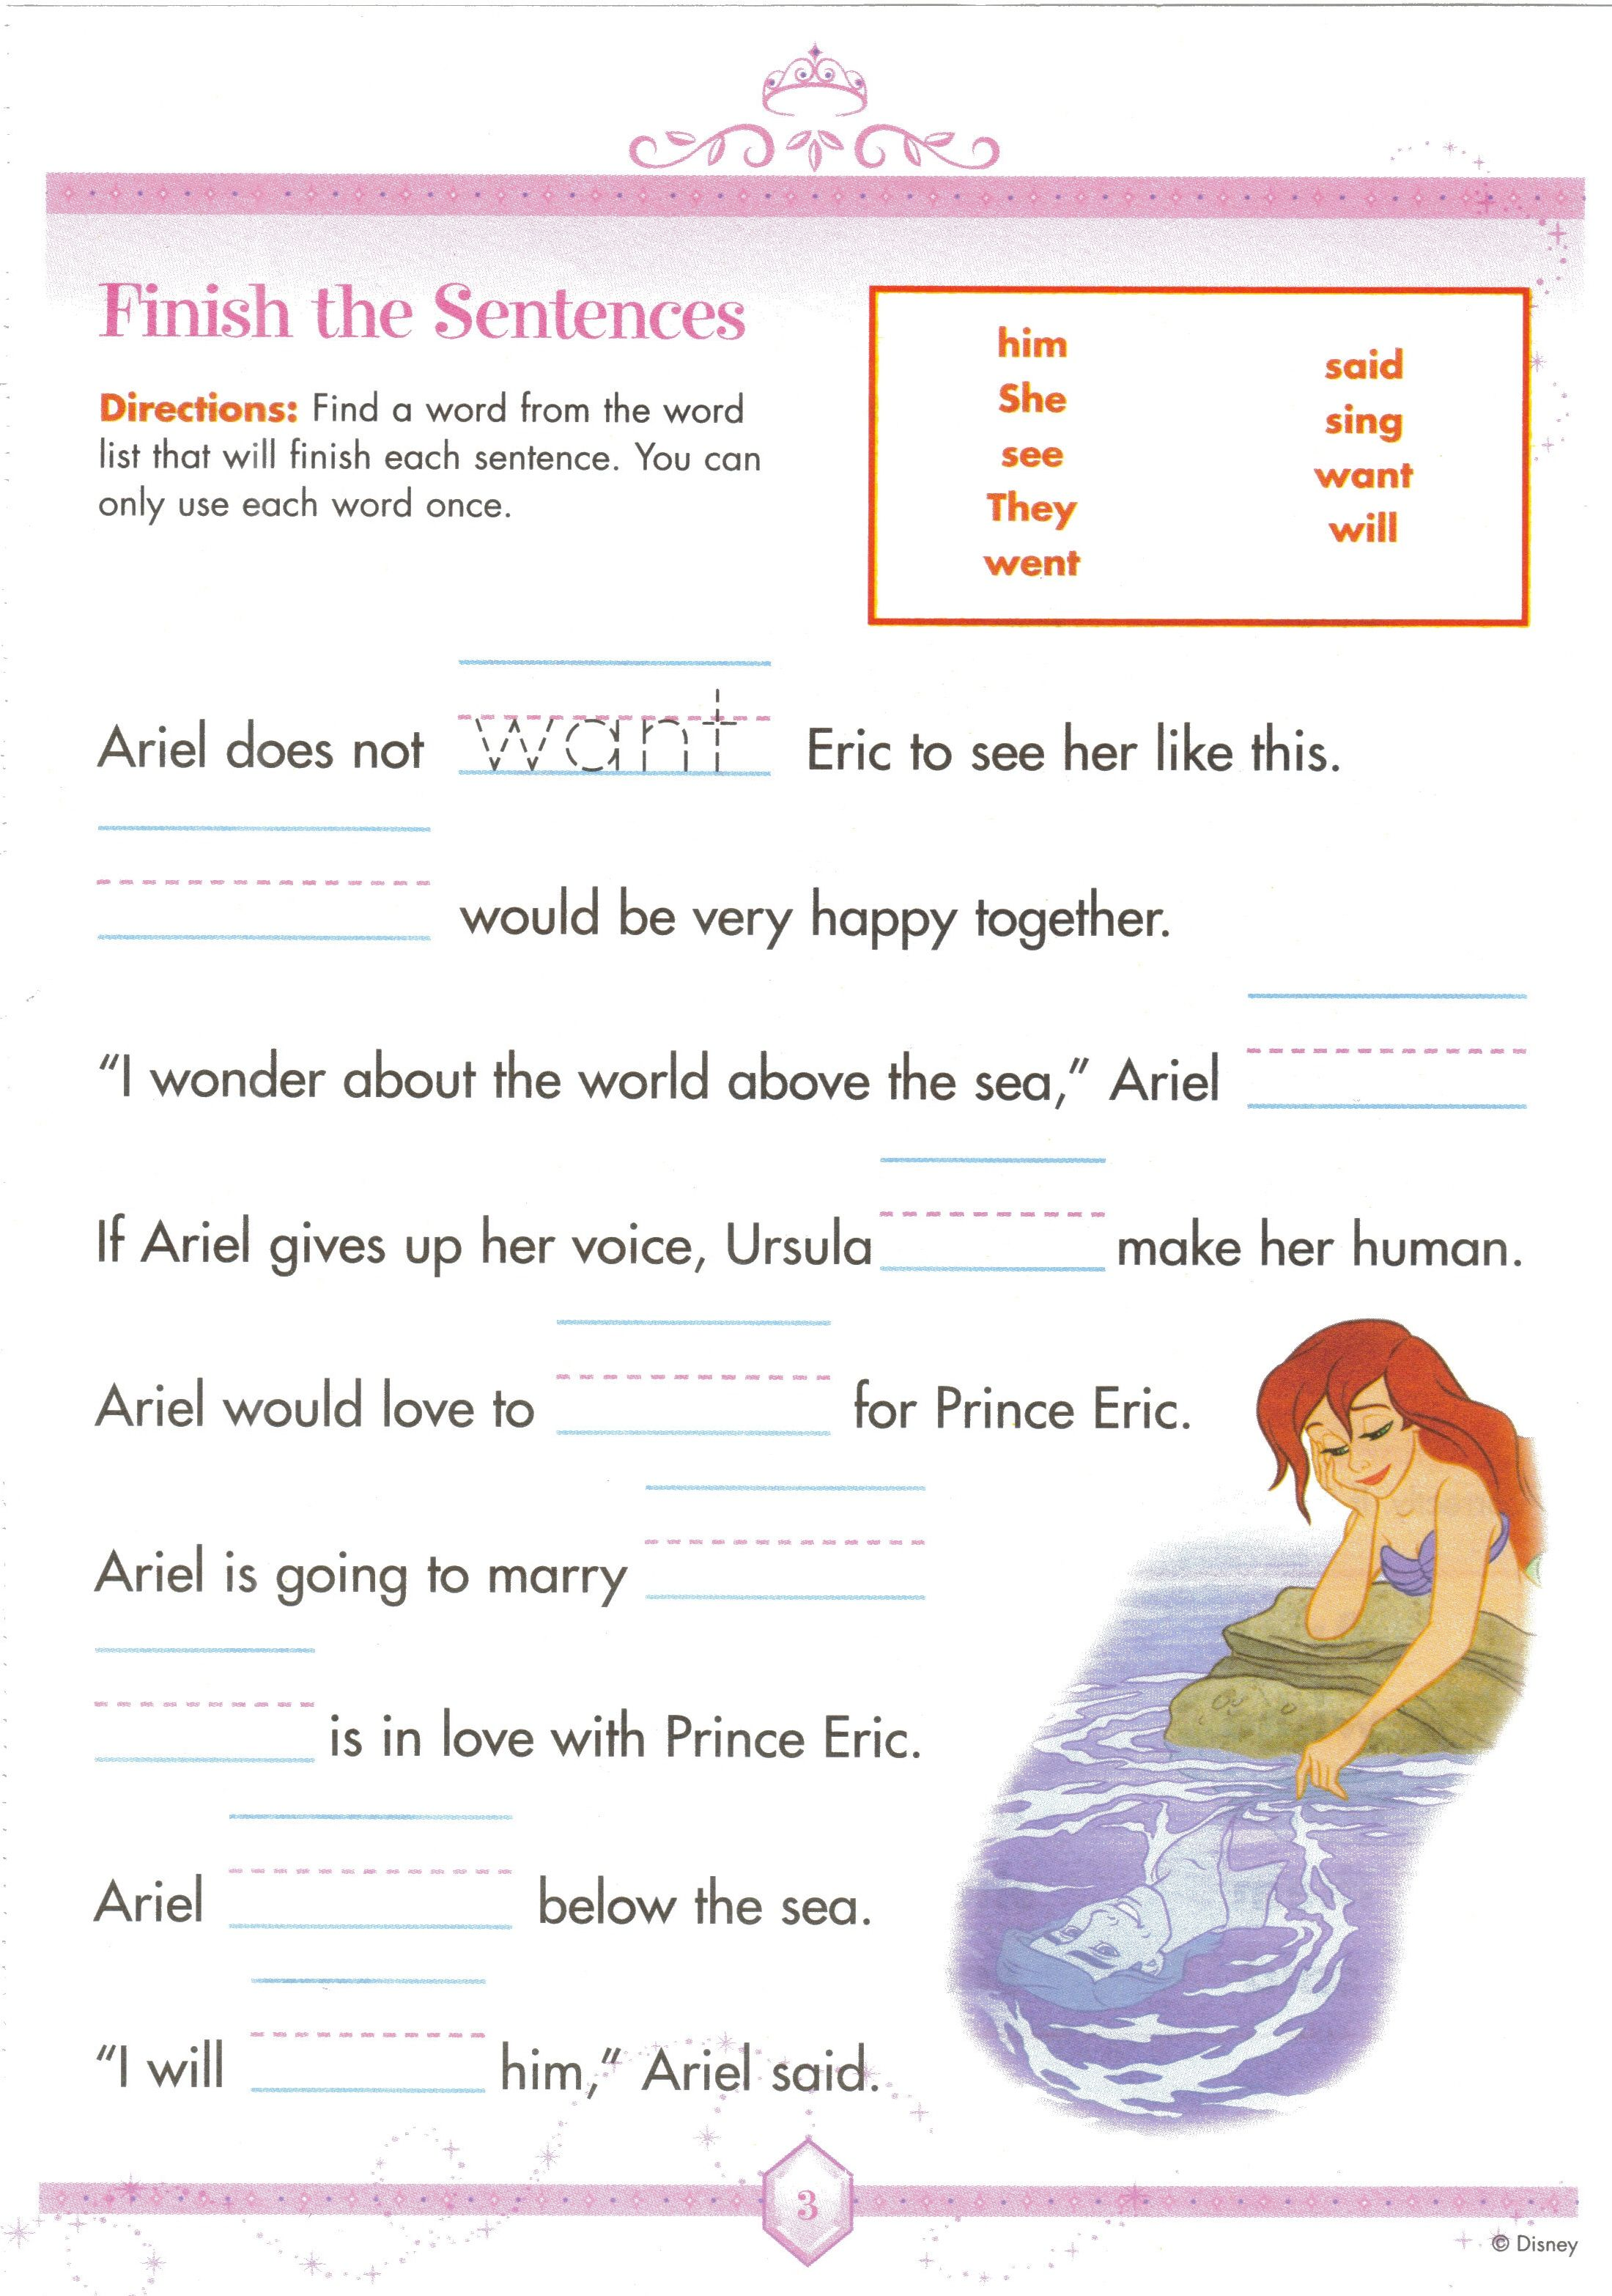 Proatmealus  Pretty  Images About Worksheets On Pinterest  Disney Fun Facts For  With Interesting  Images About Worksheets On Pinterest  Disney Fun Facts For Kids And First Grade Math With Lovely Dentist Worksheets For Preschool Also Solomon Press Worksheets In Addition Adjective Sentences Worksheets And Le Petit Prince Worksheets As Well As Plans And Elevations Worksheet Additionally Mixed Fractions Addition And Subtraction Worksheets From Pinterestcom With Proatmealus  Interesting  Images About Worksheets On Pinterest  Disney Fun Facts For  With Lovely  Images About Worksheets On Pinterest  Disney Fun Facts For Kids And First Grade Math And Pretty Dentist Worksheets For Preschool Also Solomon Press Worksheets In Addition Adjective Sentences Worksheets From Pinterestcom